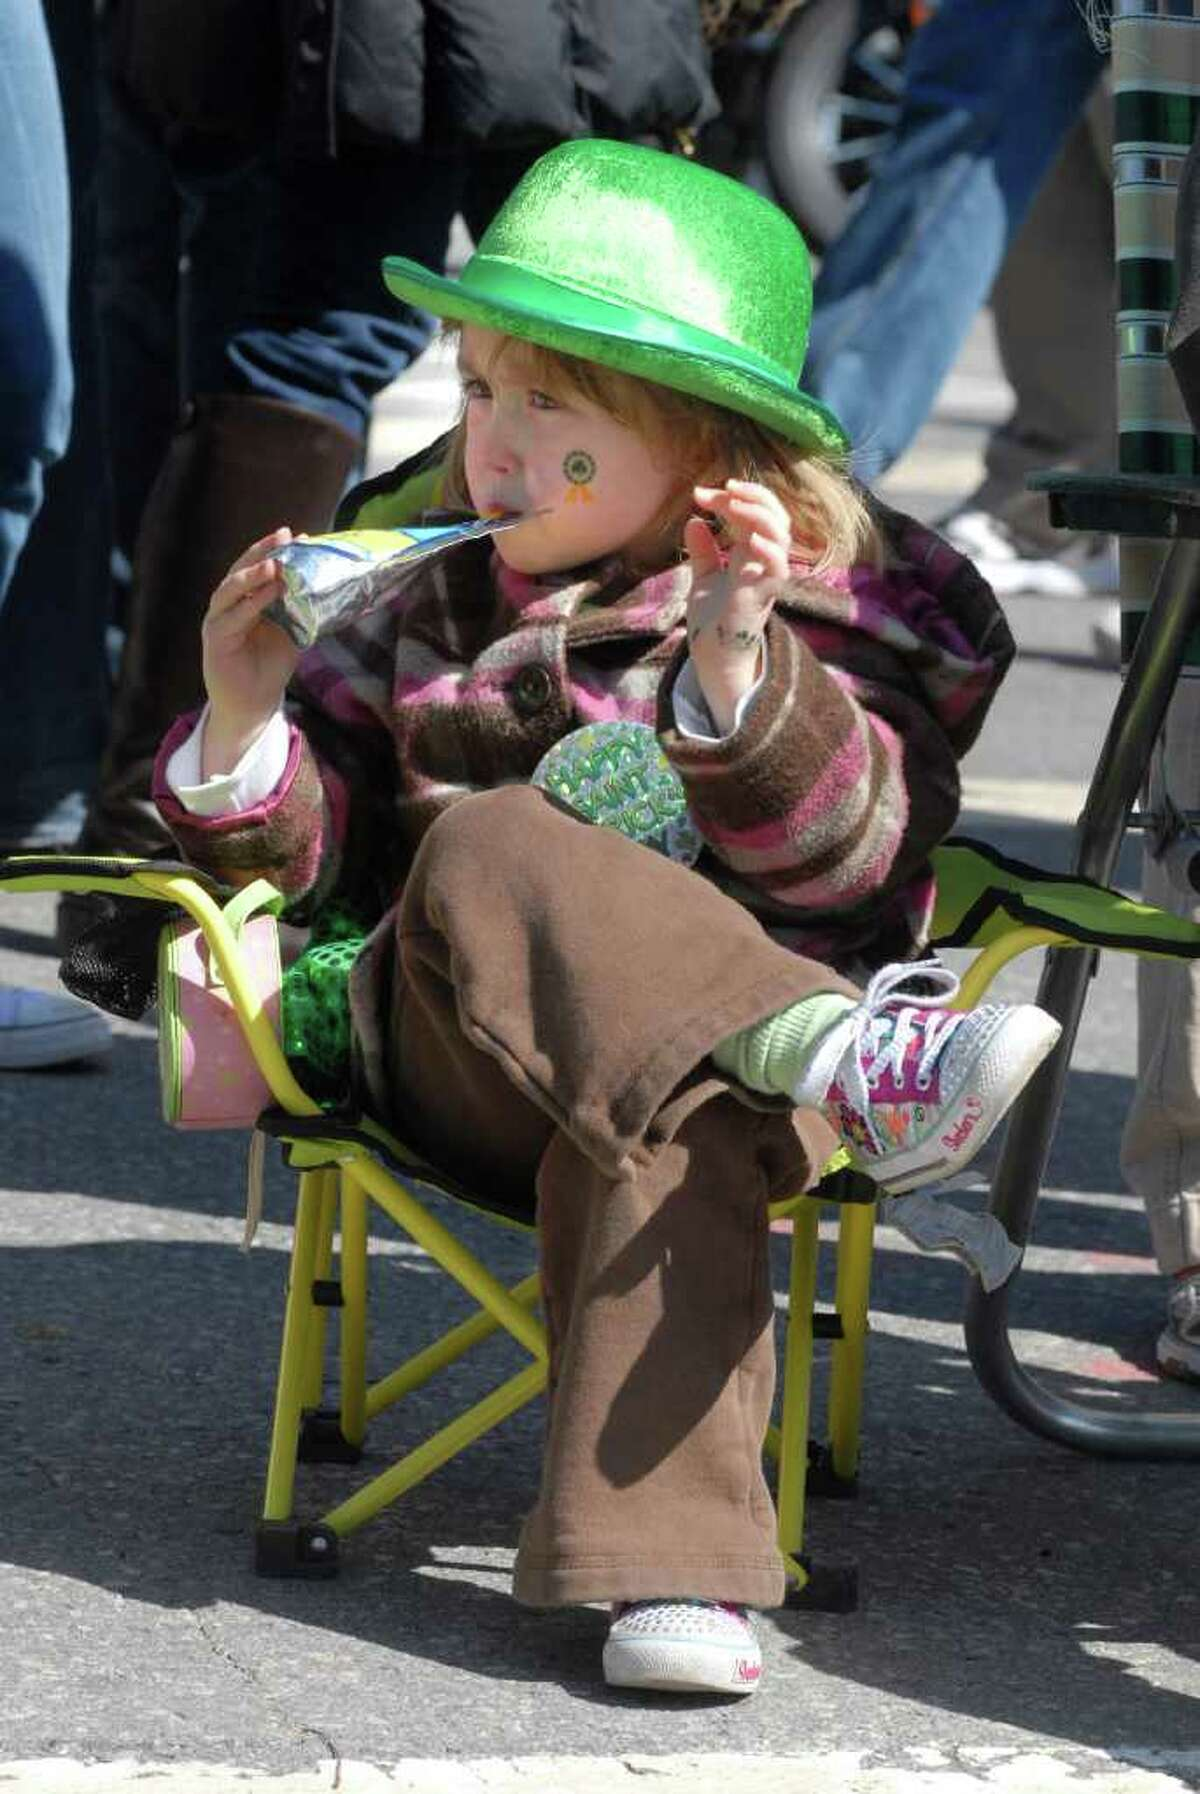 Riley Conetta (4) from Port Chester, NY watches the 35th annual St Patrick's Day Parade in Greenwich, Conn. on Sunday March 20, 2011.